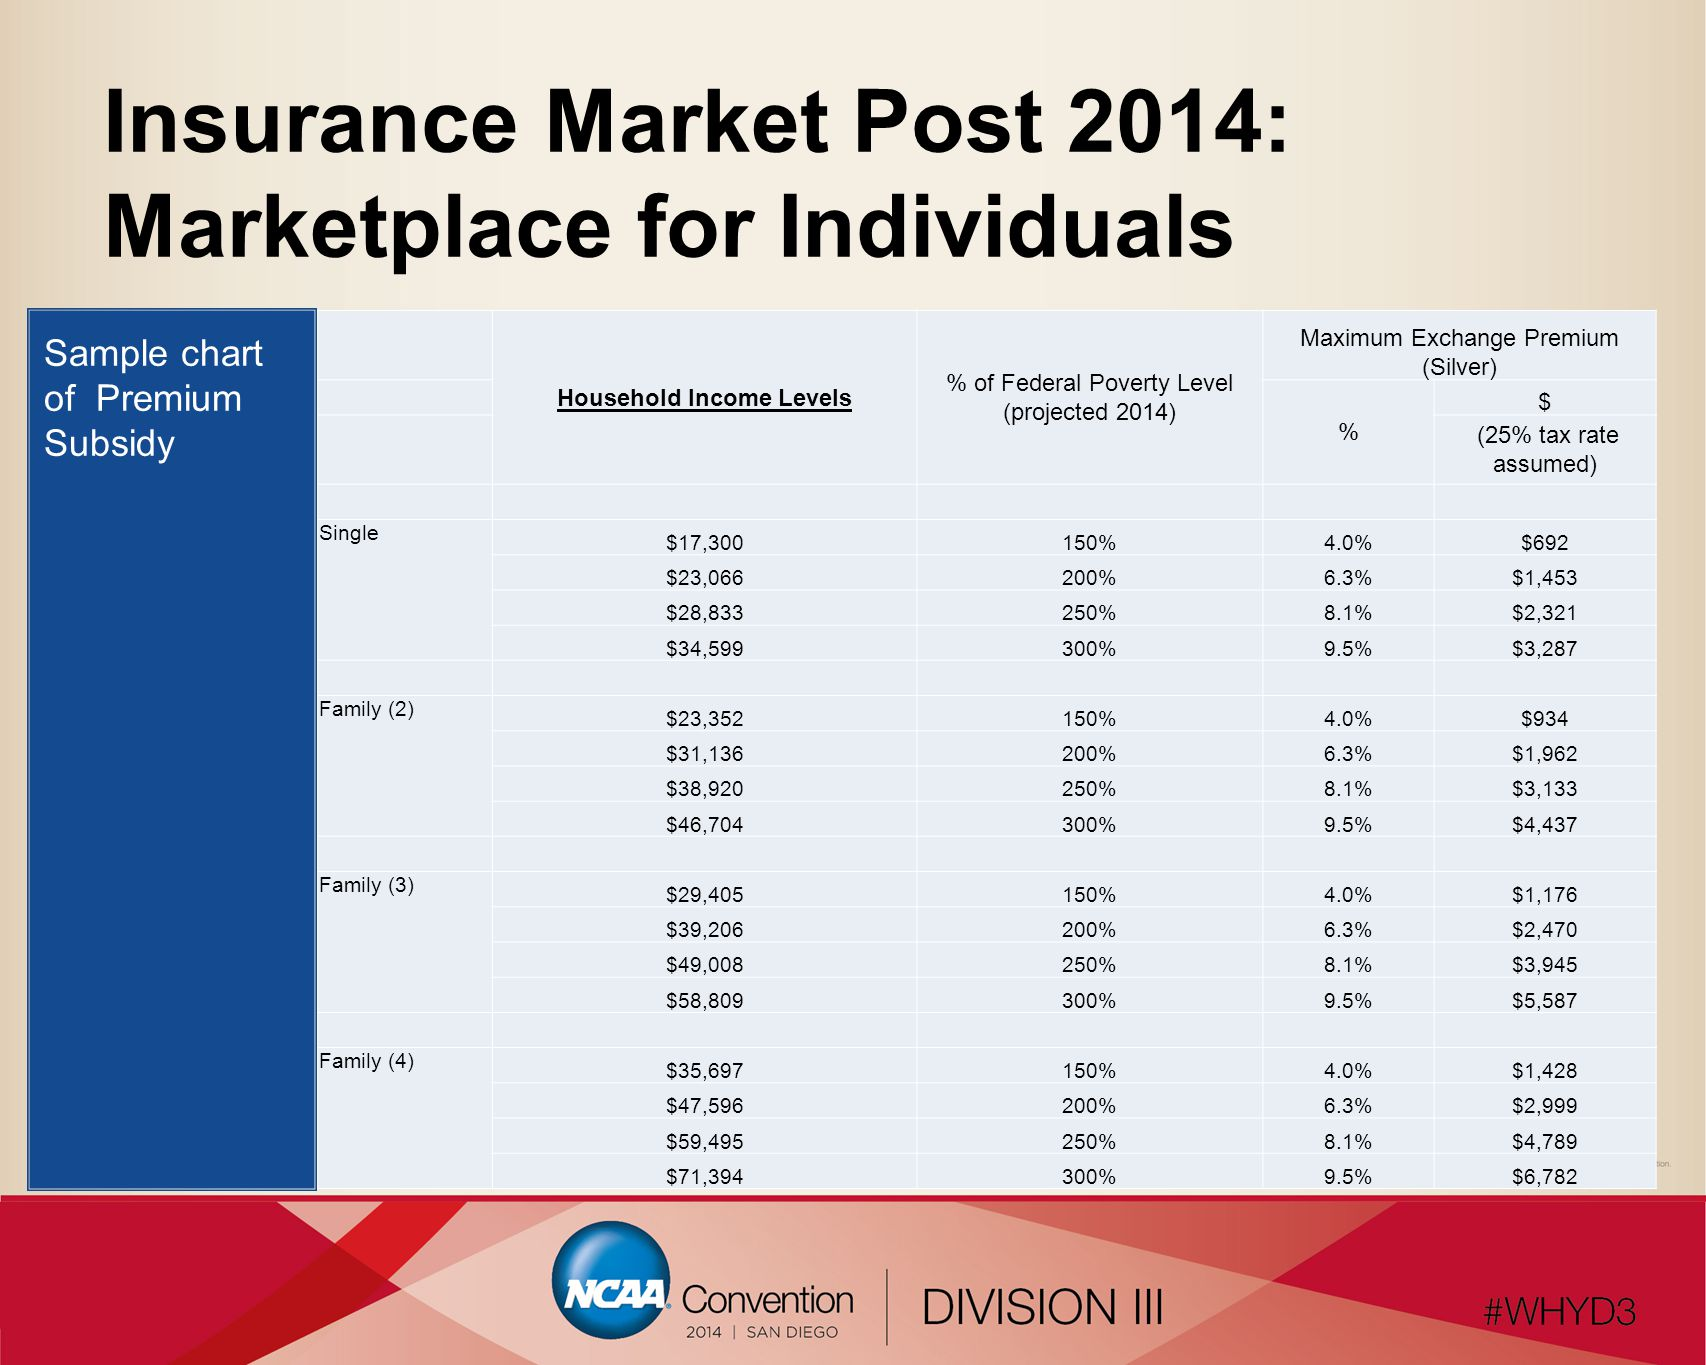 Insurance Market Post 2014: Marketplace for Individuals Household Income Levels % of Federal Poverty Level (projected 2014) Maximum Exchange Premium (Silver) % $ (25% tax rate assumed) Single $17,300150%4.0%$692 $23,066200%6.3%$1,453 $28,833250%8.1%$2,321 $34,599300%9.5%$3,287 Family (2) $23,352150%4.0%$934 $31,136200%6.3%$1,962 $38,920250%8.1%$3,133 $46,704300%9.5%$4,437 Family (3) $29,405150%4.0%$1,176 $39,206200%6.3%$2,470 $49,008250%8.1%$3,945 $58,809300%9.5%$5,587 Family (4) $35,697150%4.0%$1,428 $47,596200%6.3%$2,999 $59,495250%8.1%$4,789 $71,394300%9.5%$6,782 Sample chart of Premium Subsidy